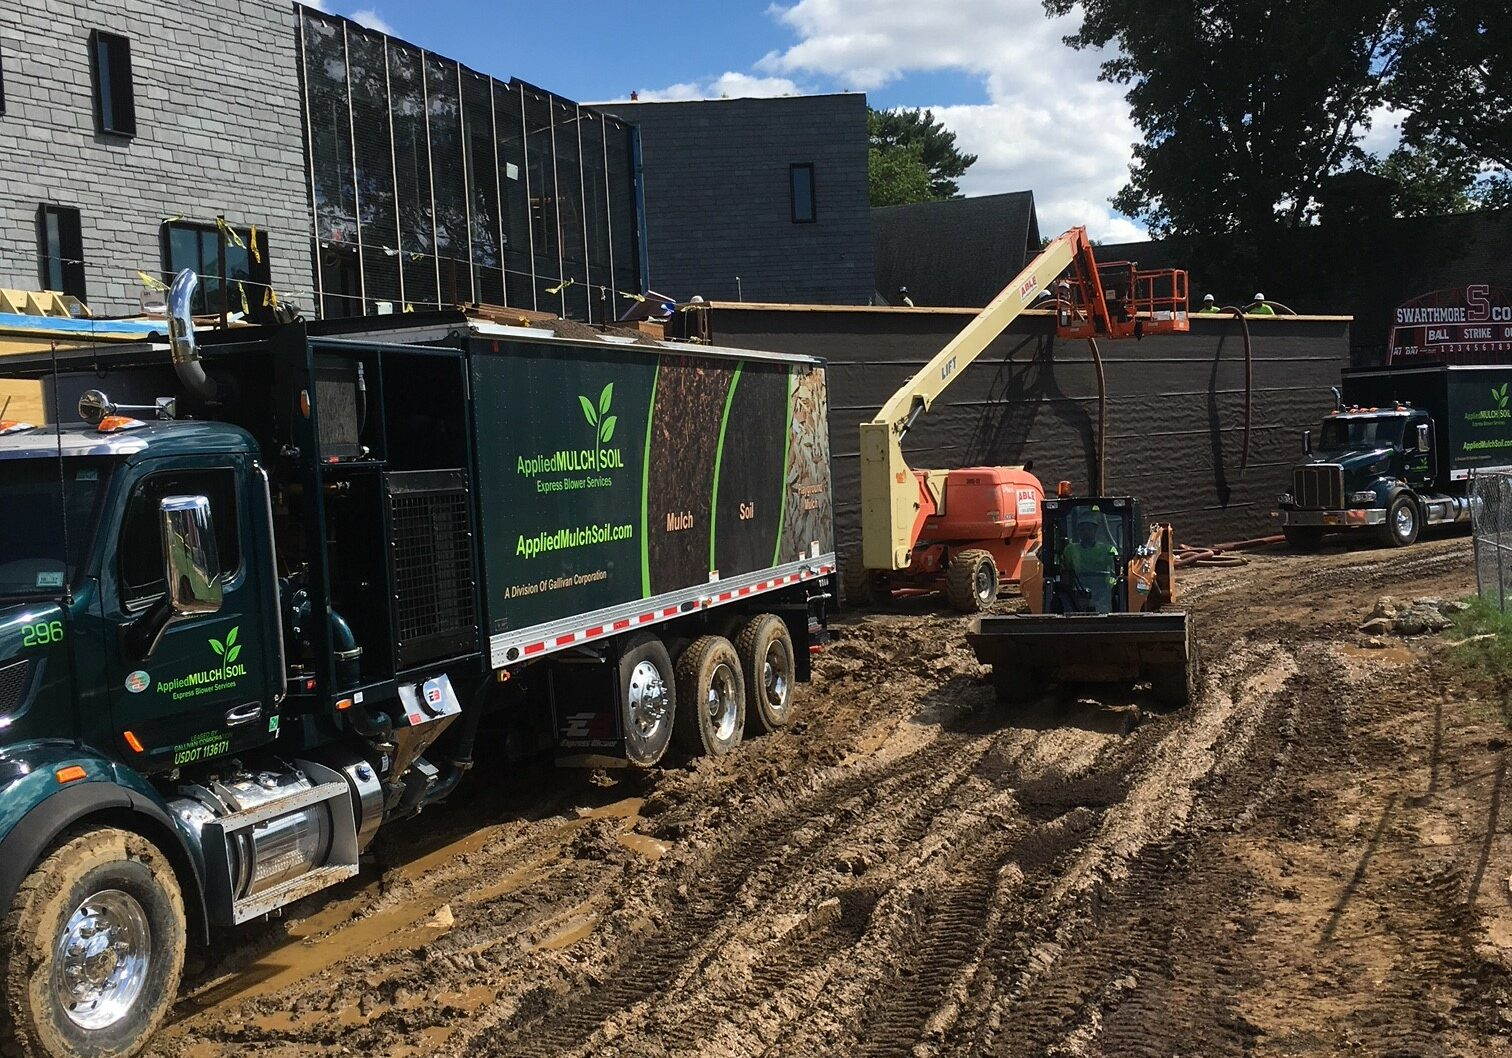 Blowing in Material Over a Retaining Wall at a Construction Site